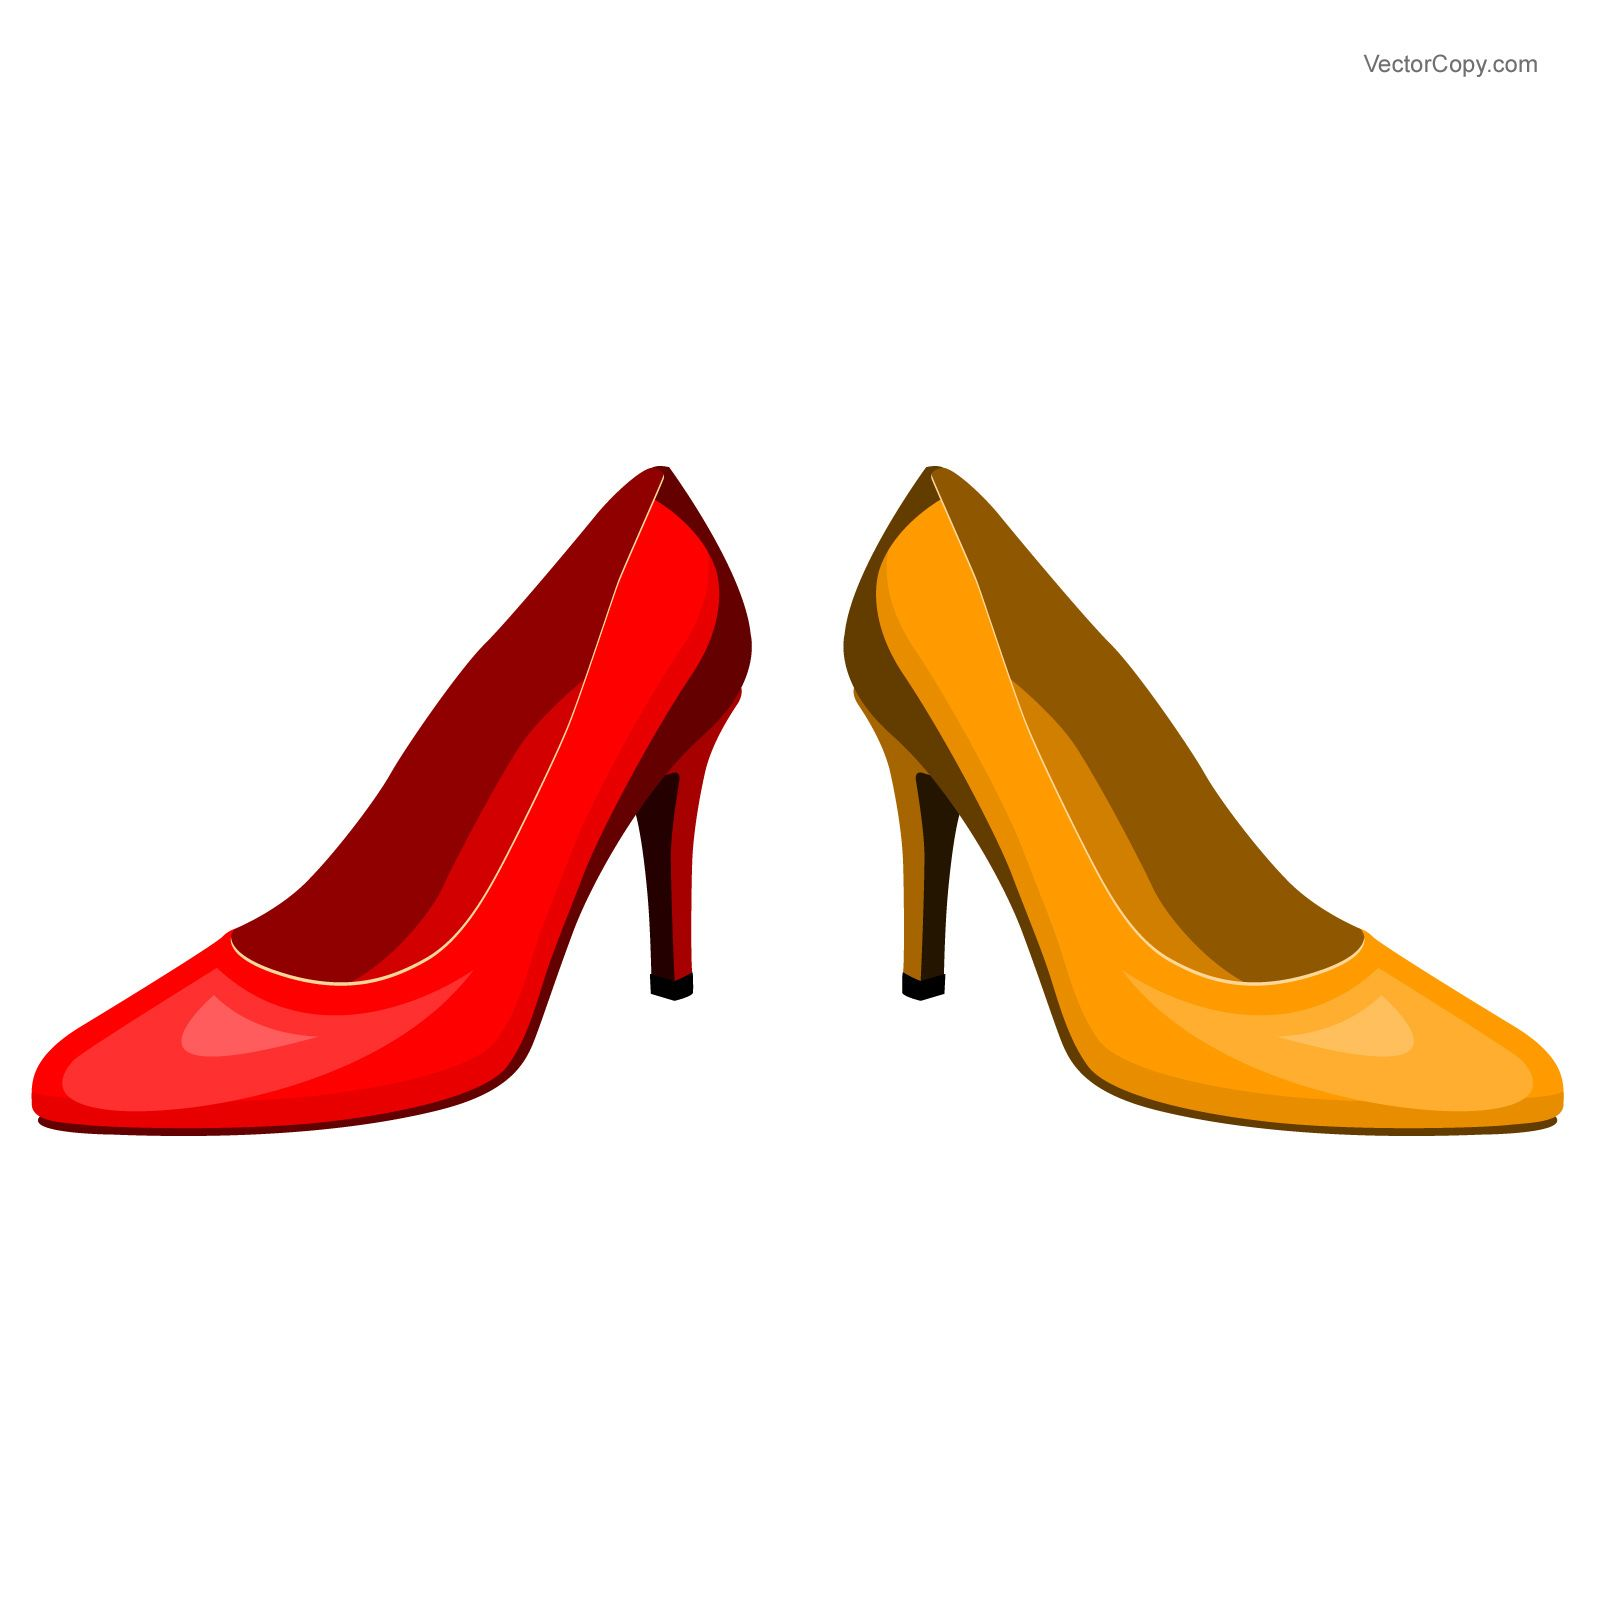 High heel shoe, download free vector images, by VectorCopy